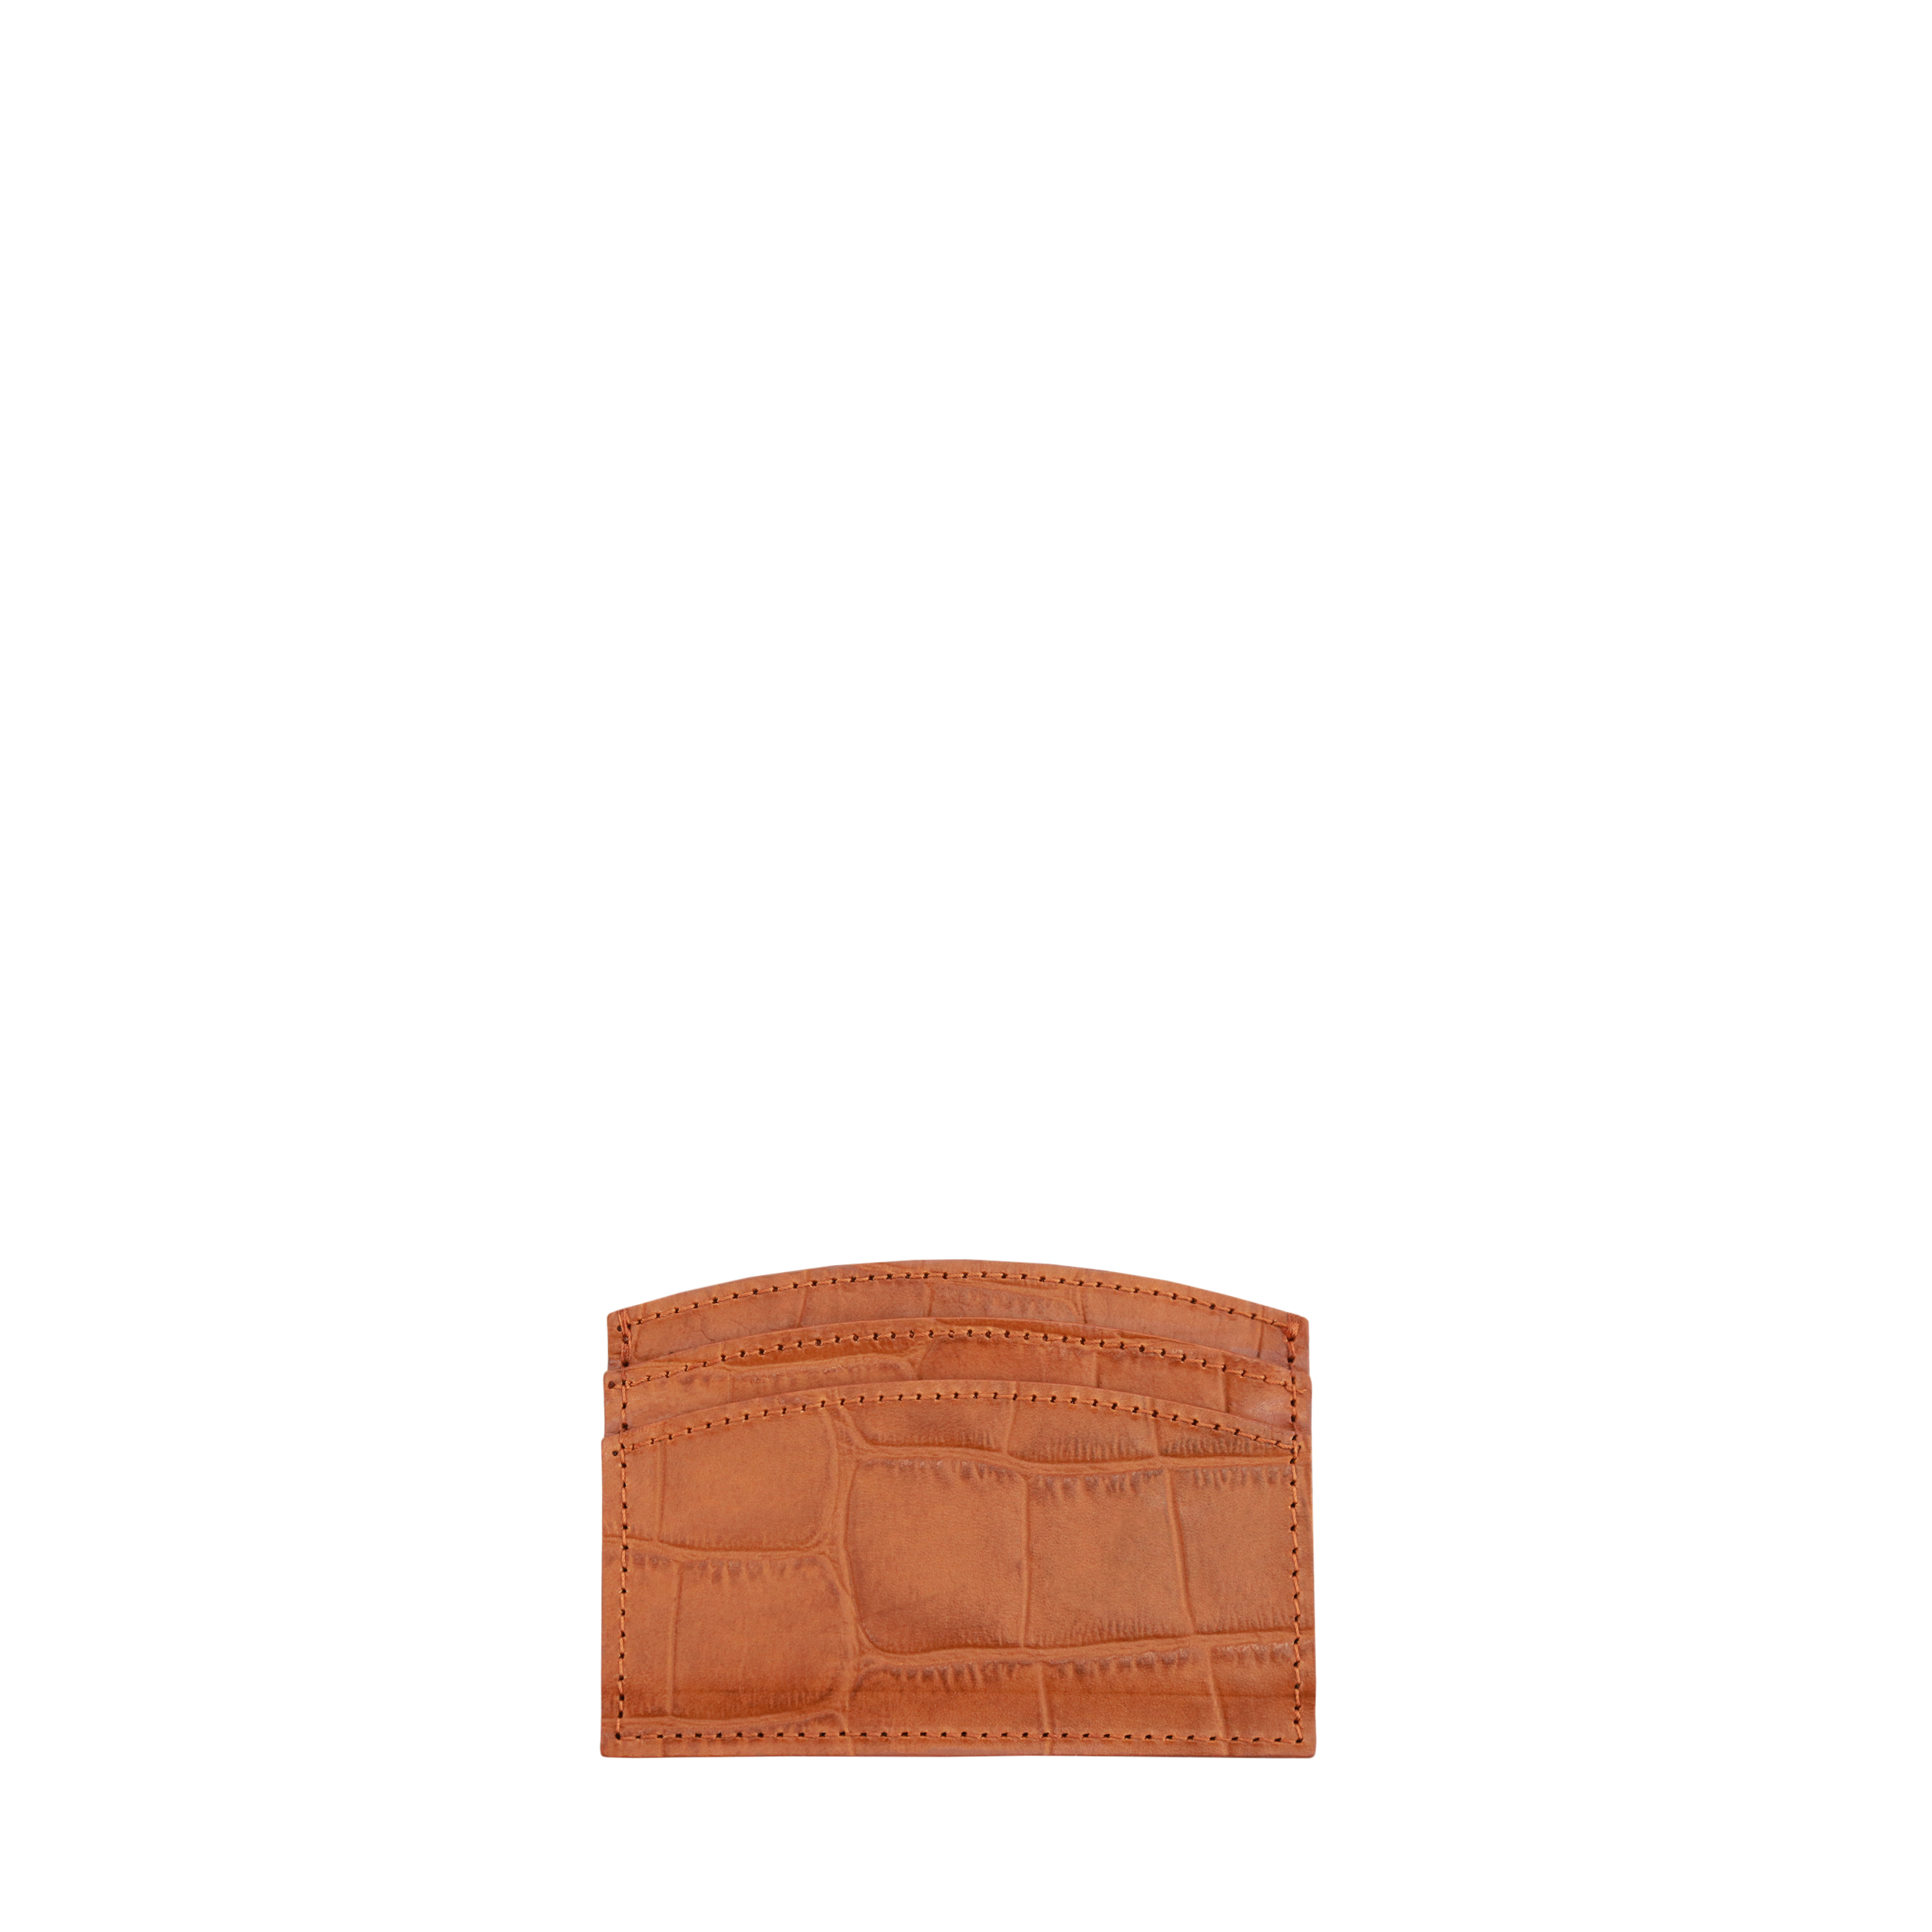 Card-Holder-Croco-Honey-Special-Edition-2